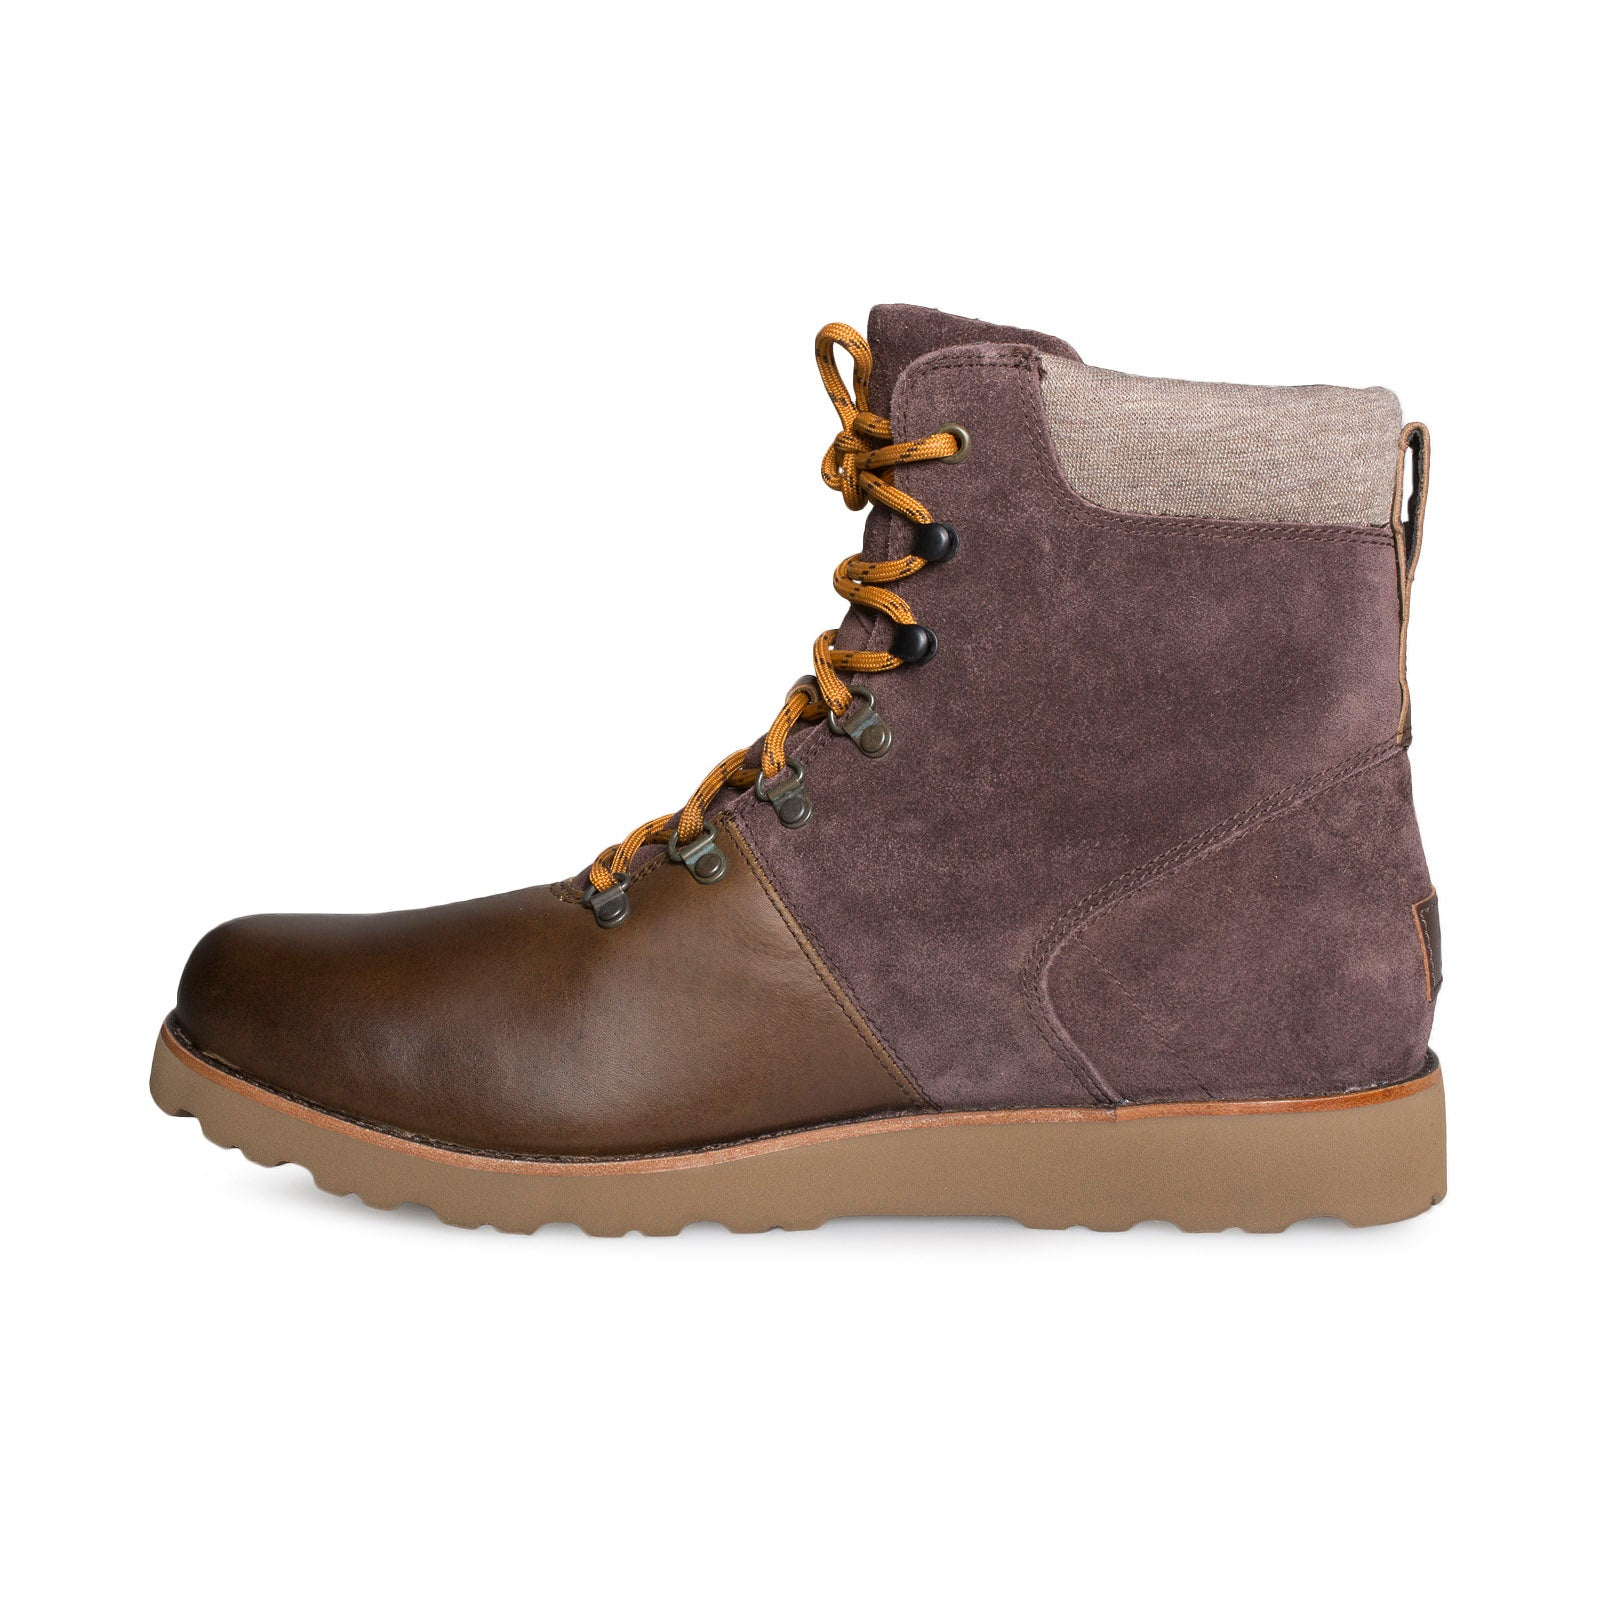 7098a27878f UGG Halfdan Grizzly Boots - Men's - MyCozyBoots